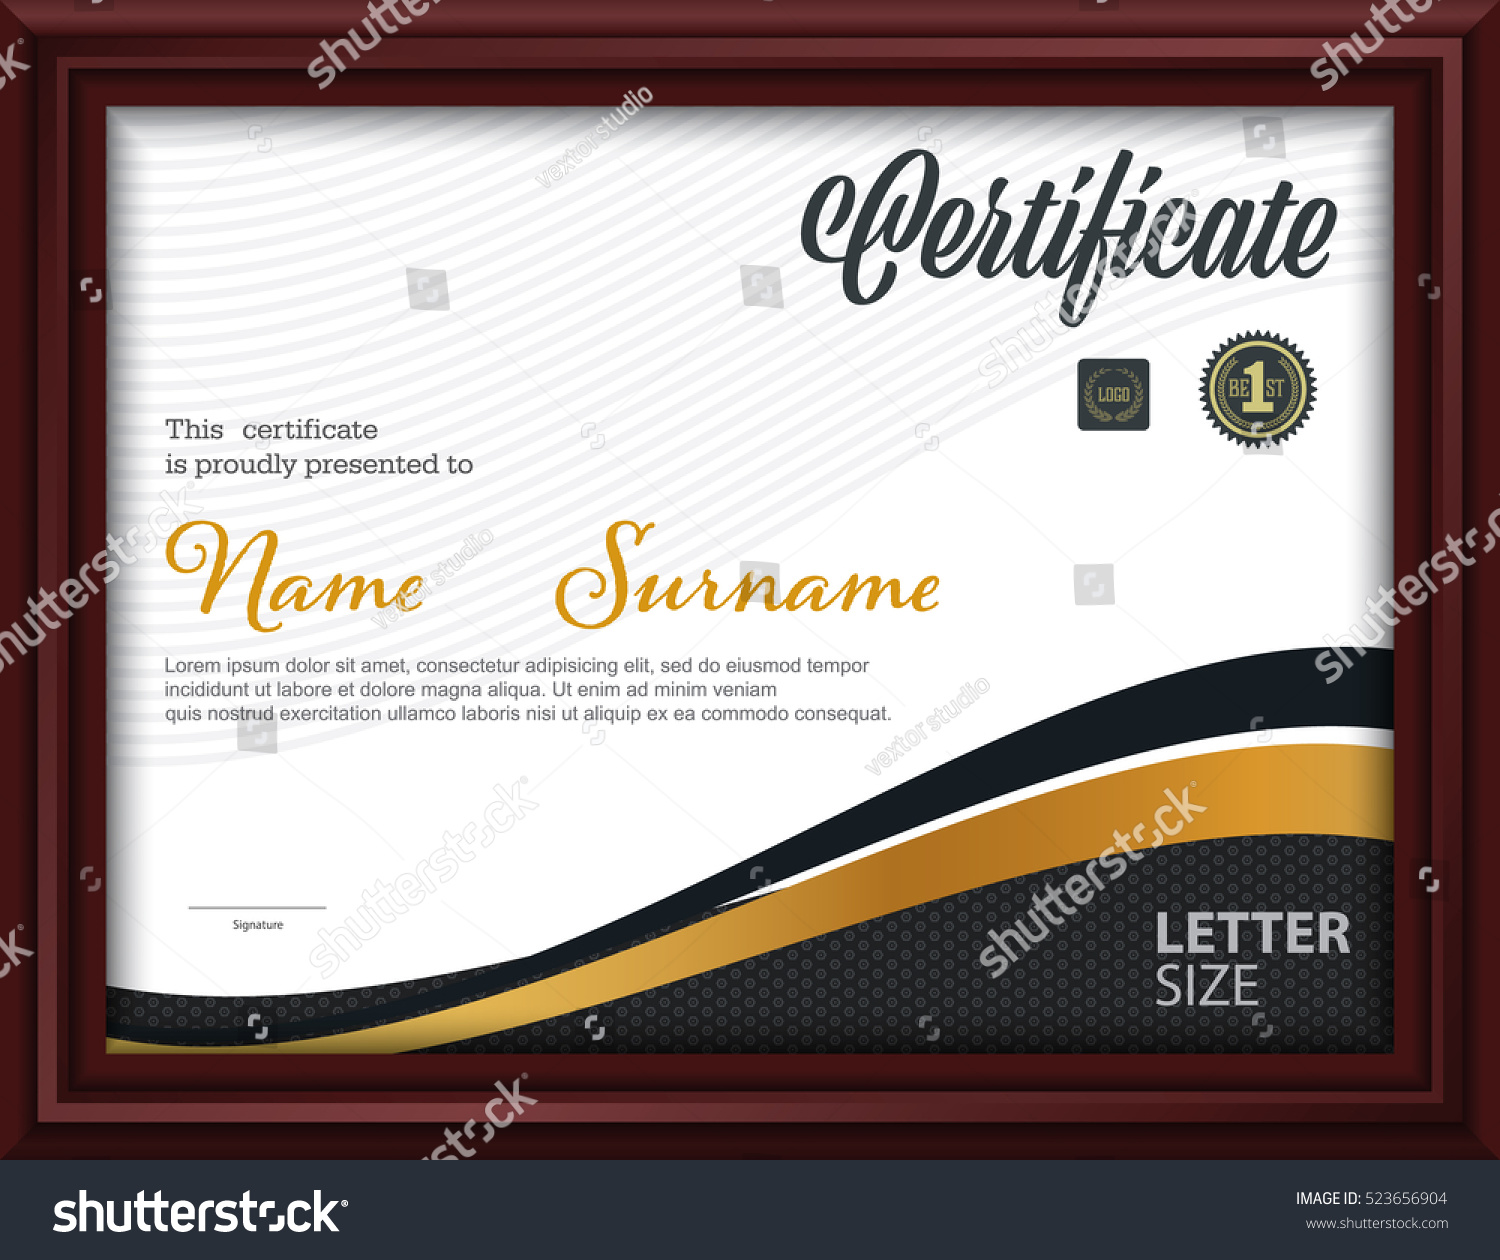 Certificate templateletter size diploma vector illustration stock certificate templateletter size diploma vector illustration yadclub Gallery